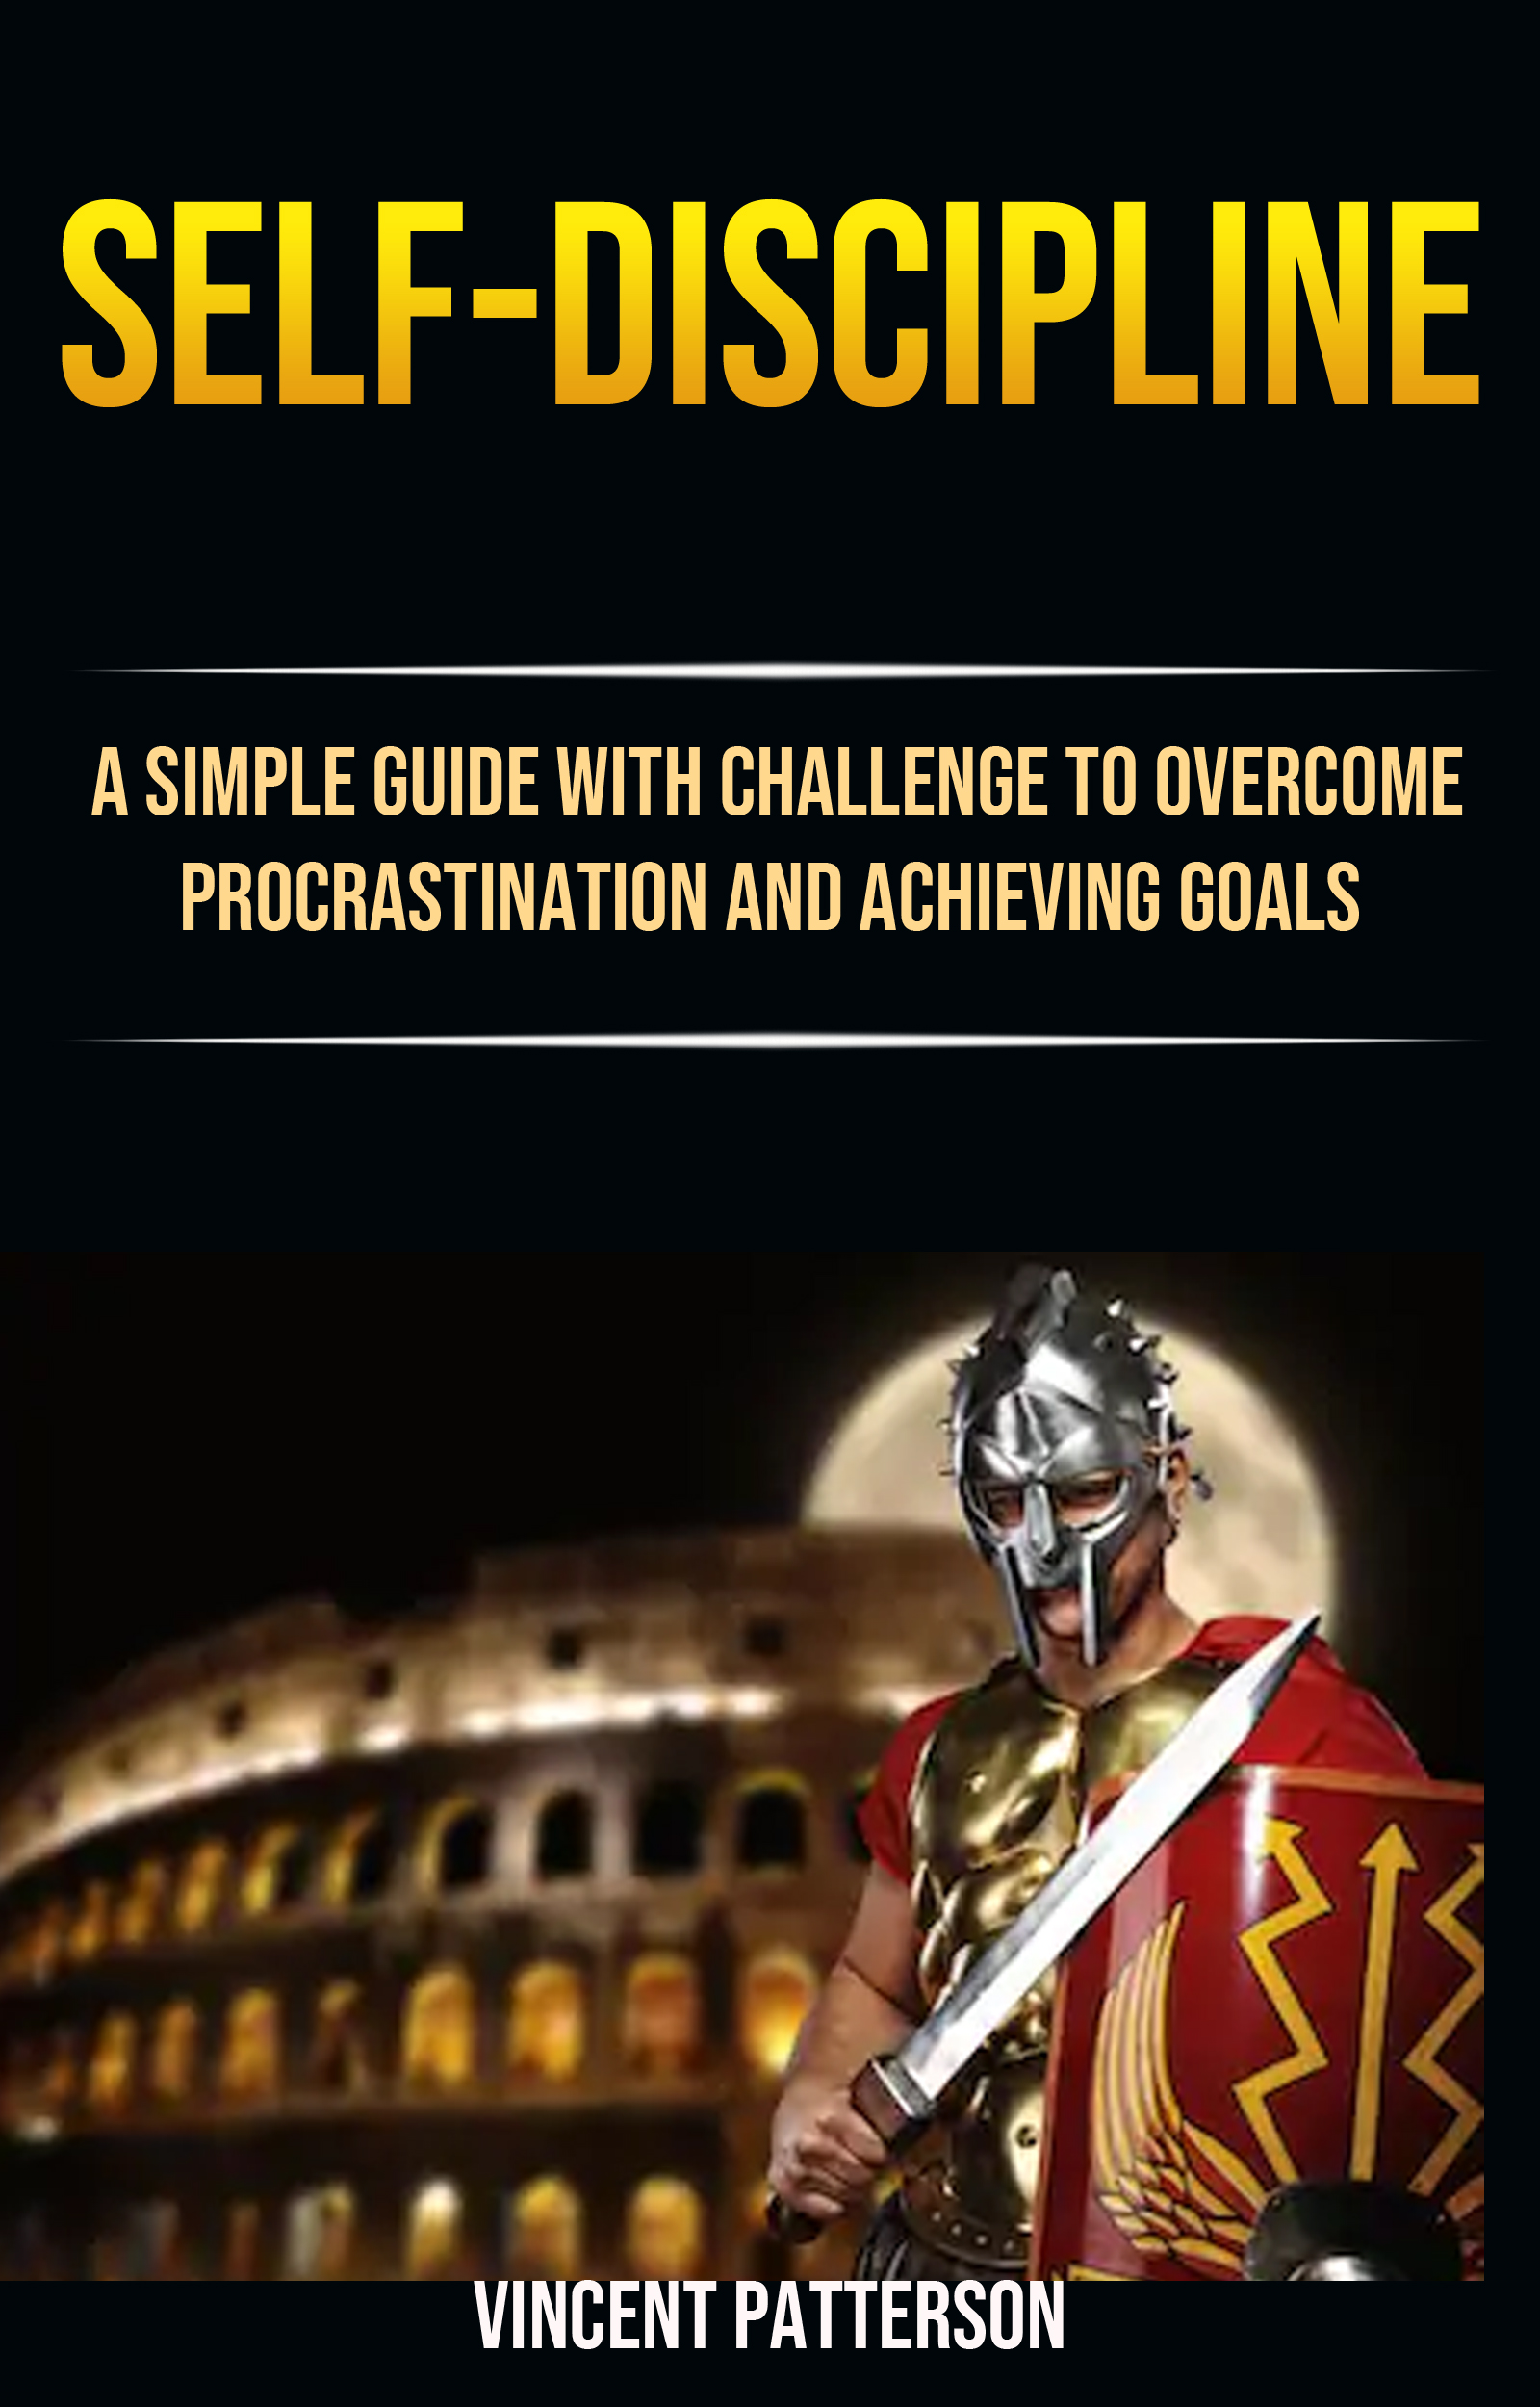 Self-discipline: a simple guide with challenge to overcome procrastination and achieving goals